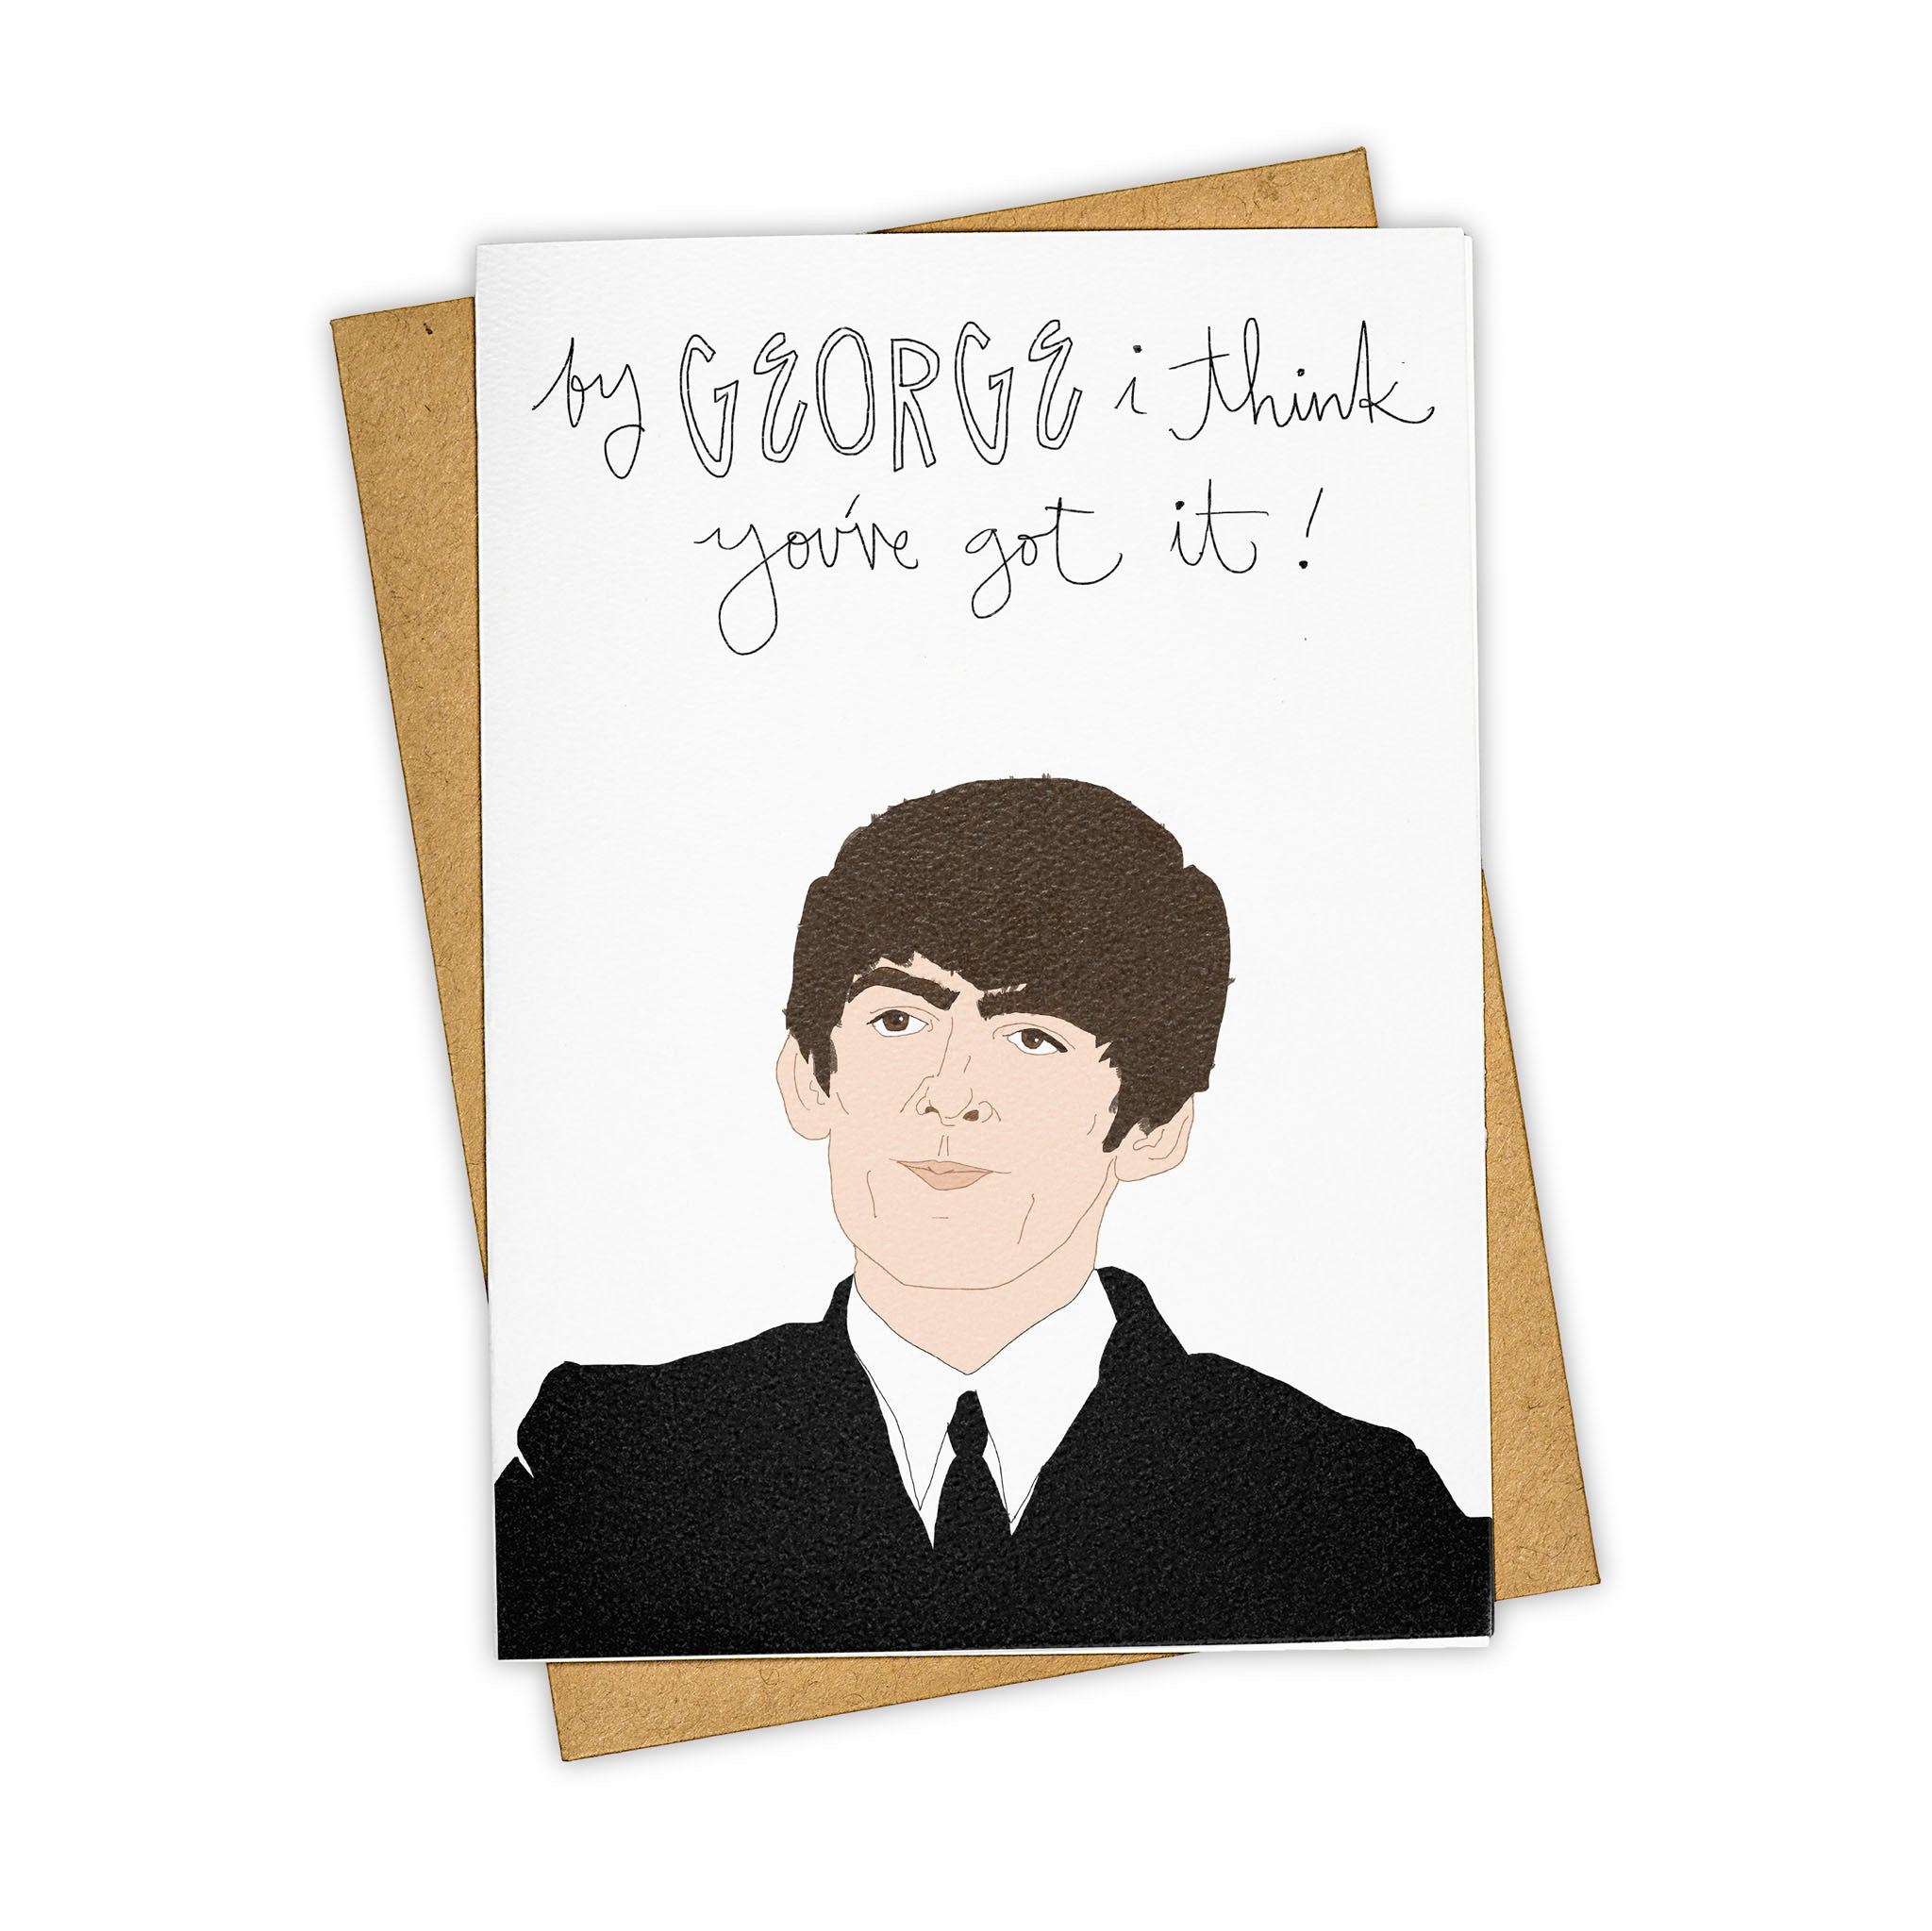 H a m m e r t i m e tay ham tay ham the beatles george harrison birthday card m4hsunfo